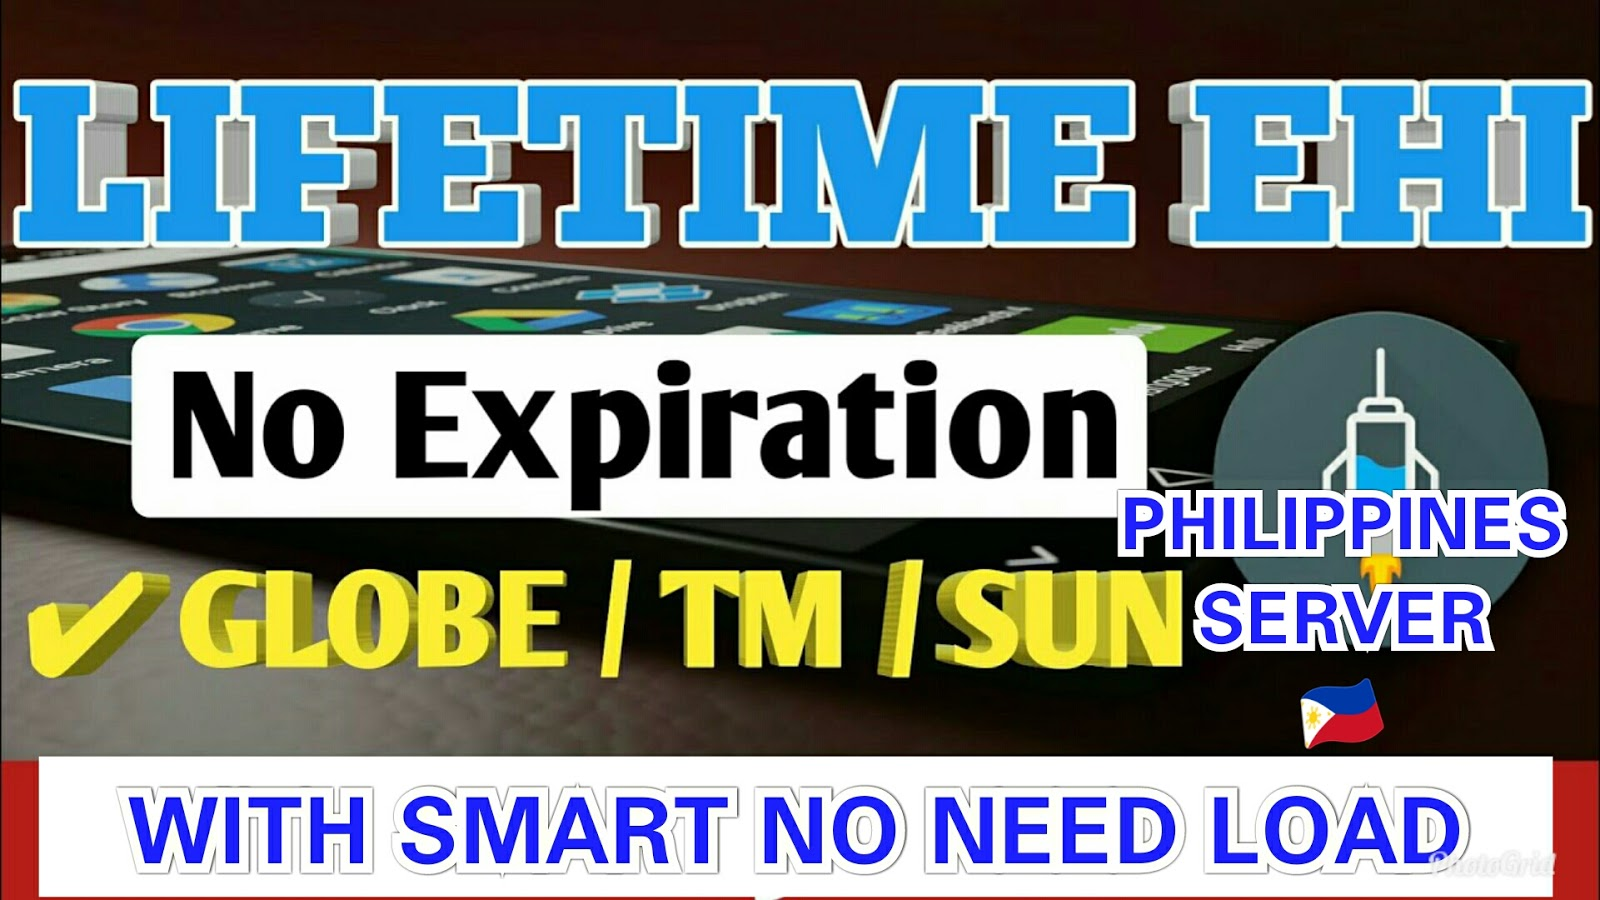 Philippine Server Lifetime Superfast ehi All Networks Download Now